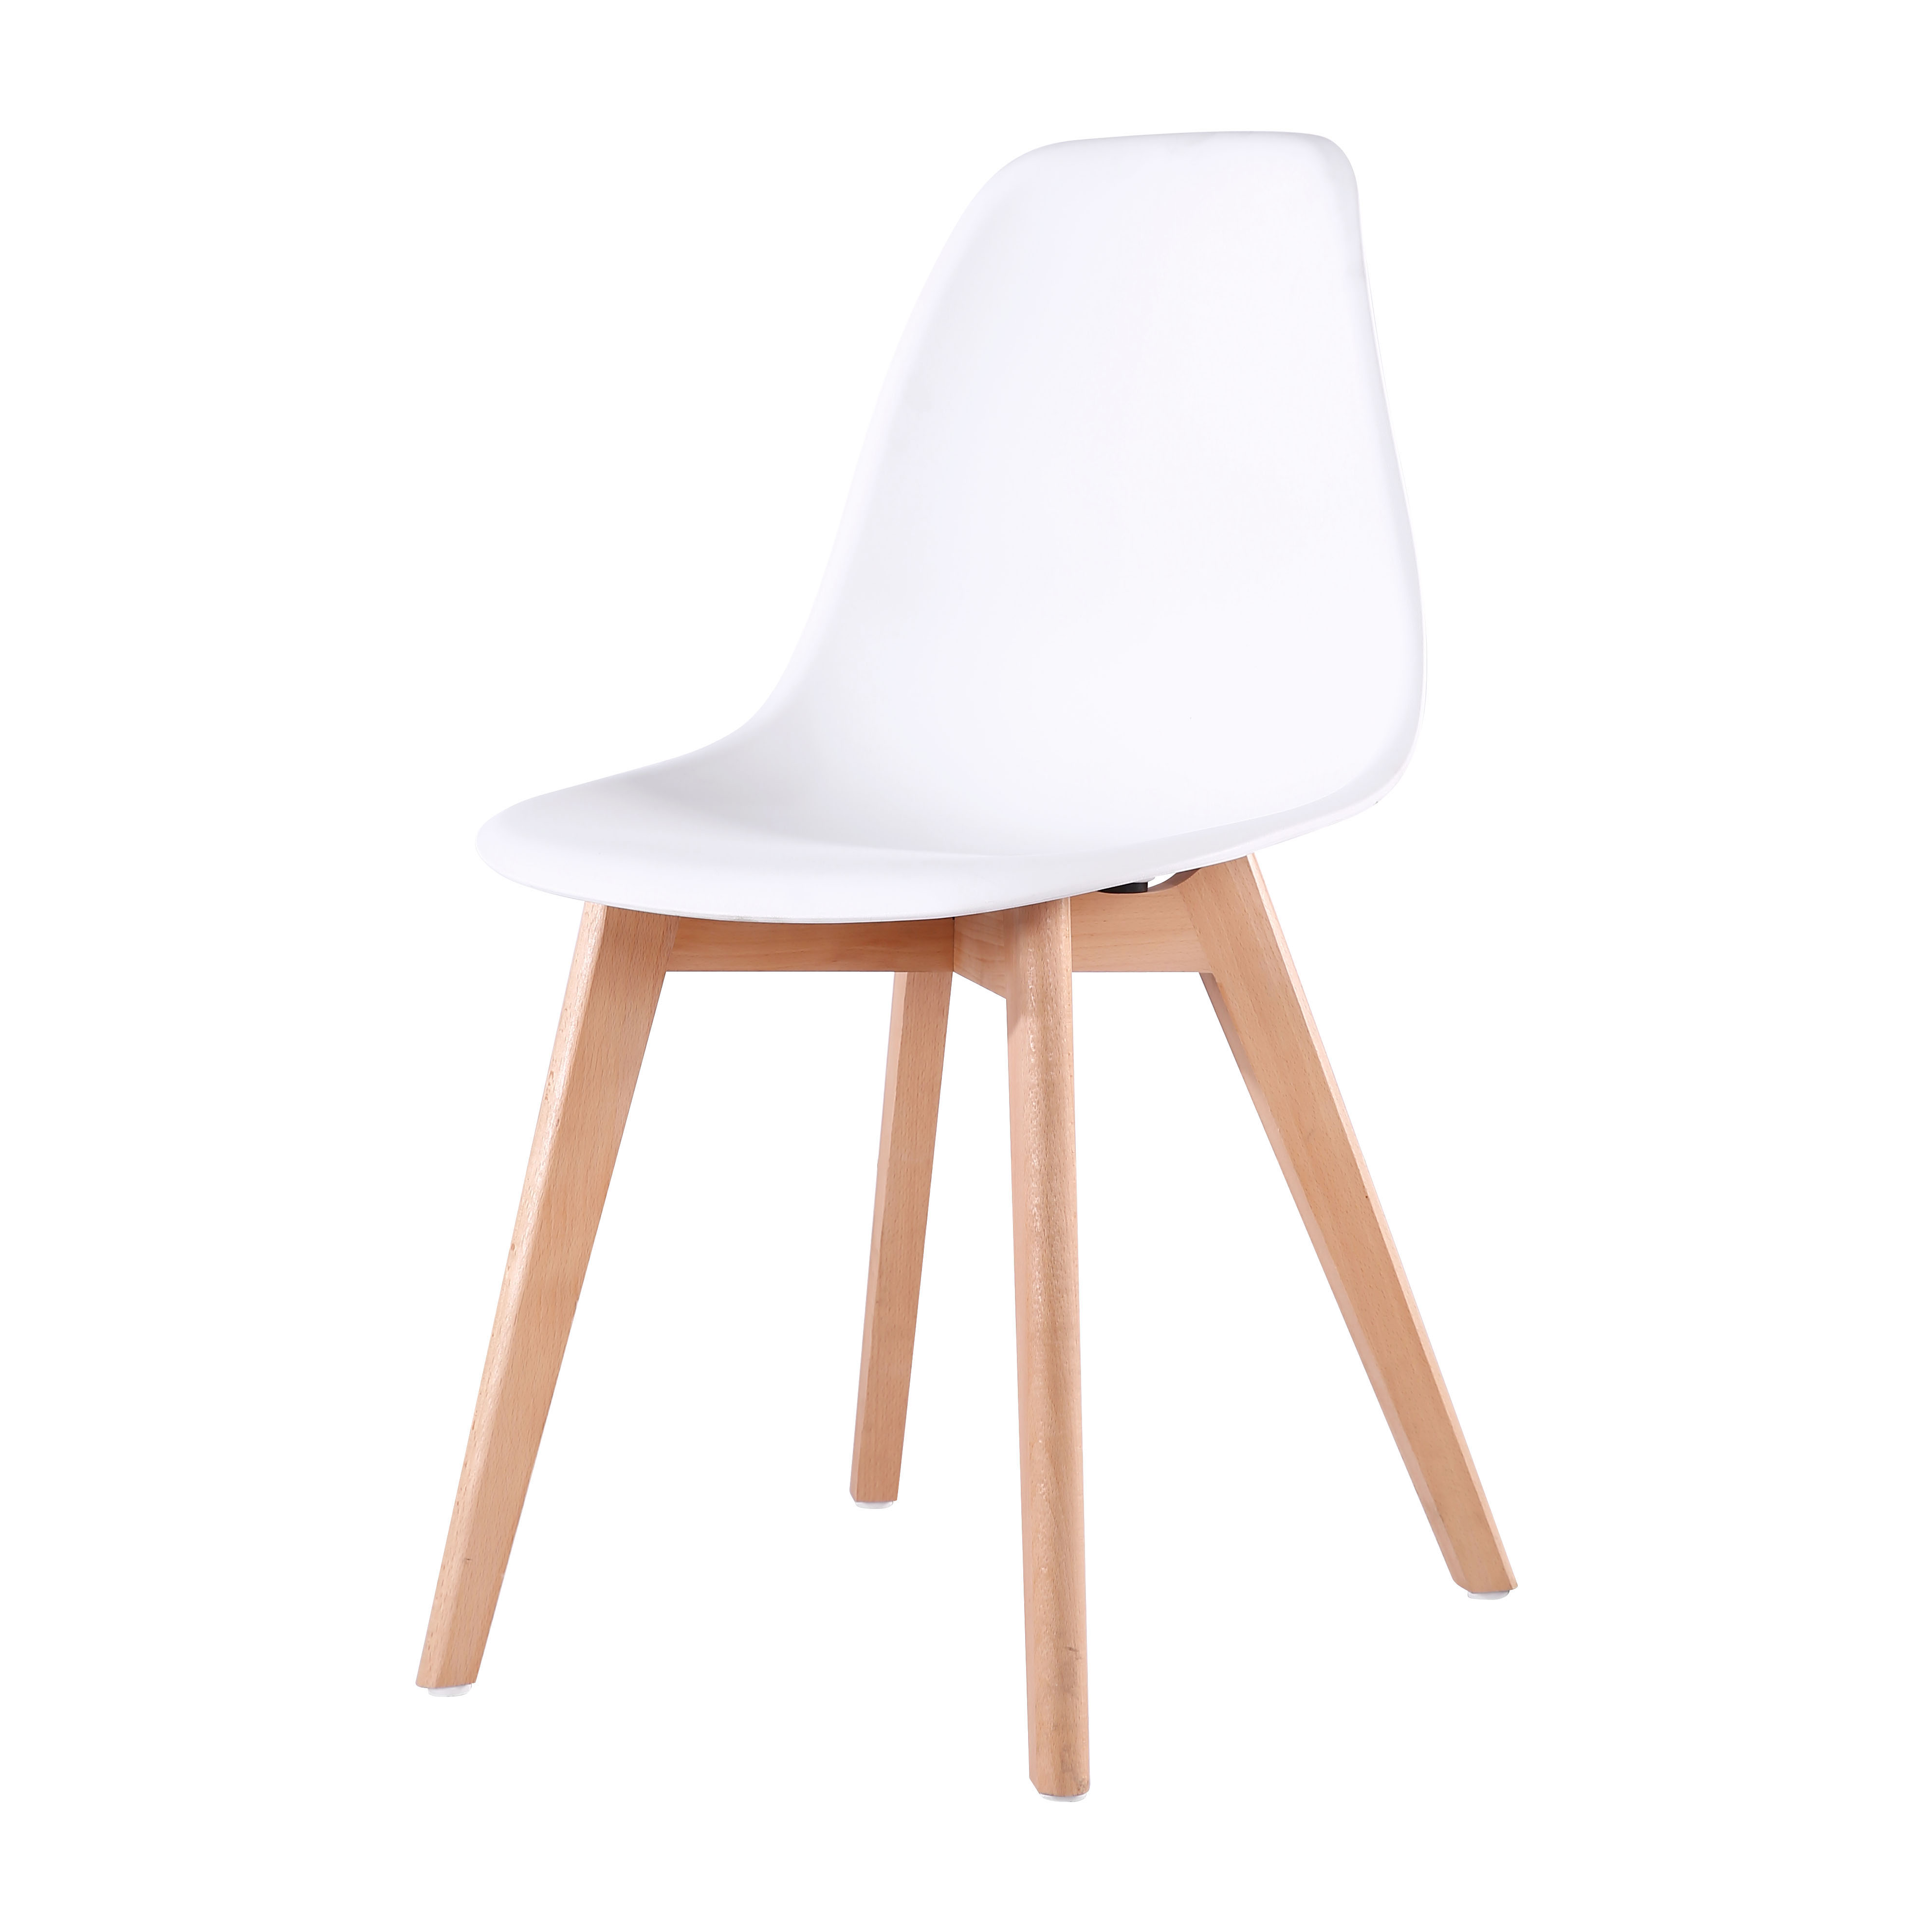 Fine Modern Dinning Chair Wooden Legs Plastic Dinner Kitchen Dining Chairs For Sale